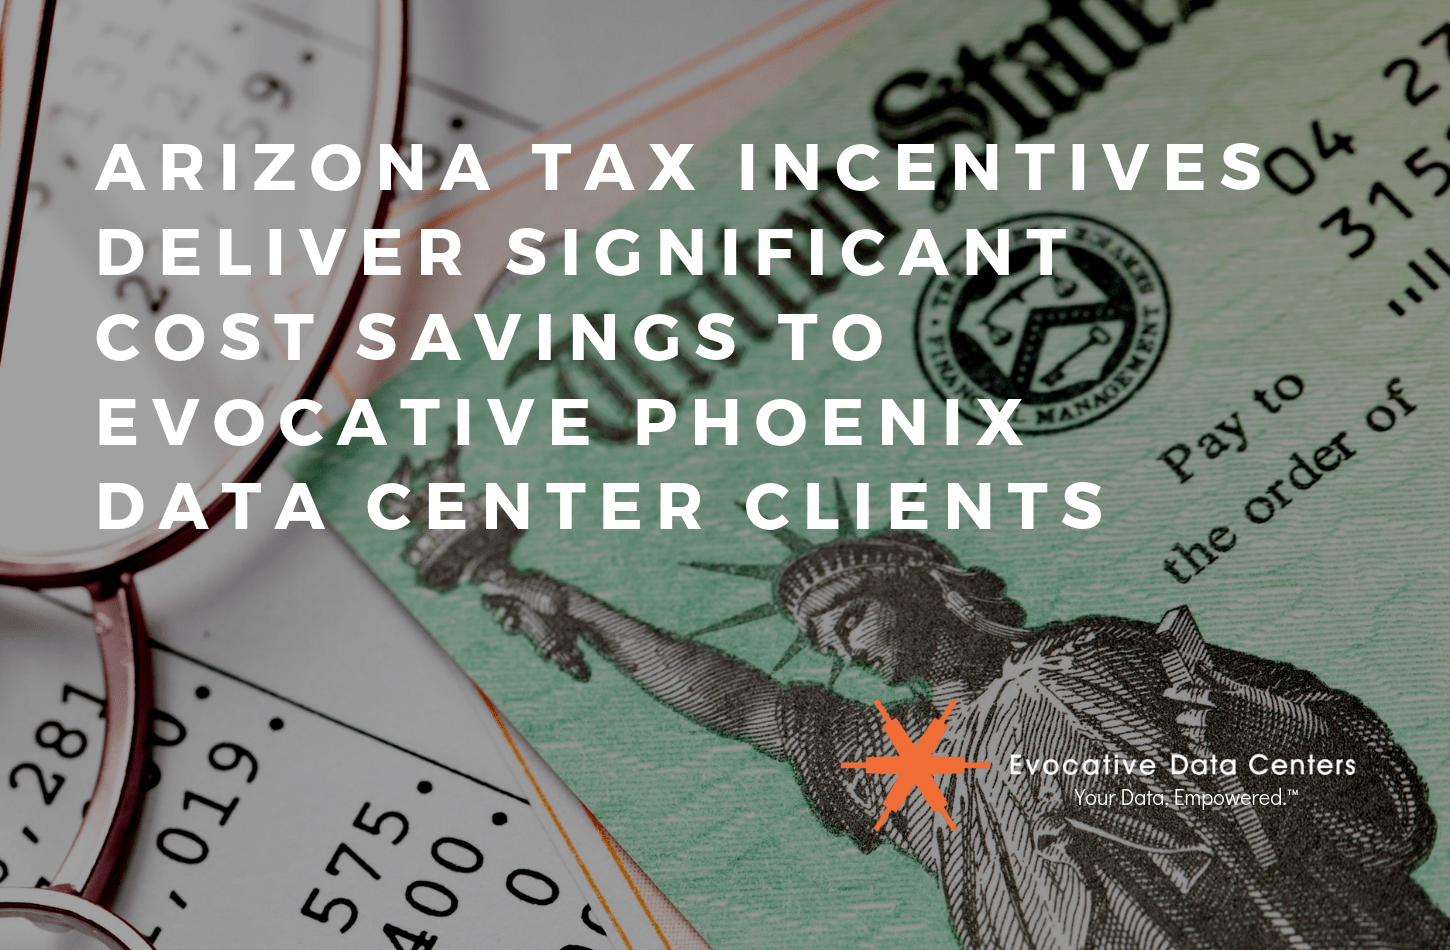 Arizona Tax Incentives Deliver Significant Cost Savings to Evocative Phoenix Data Center Clients